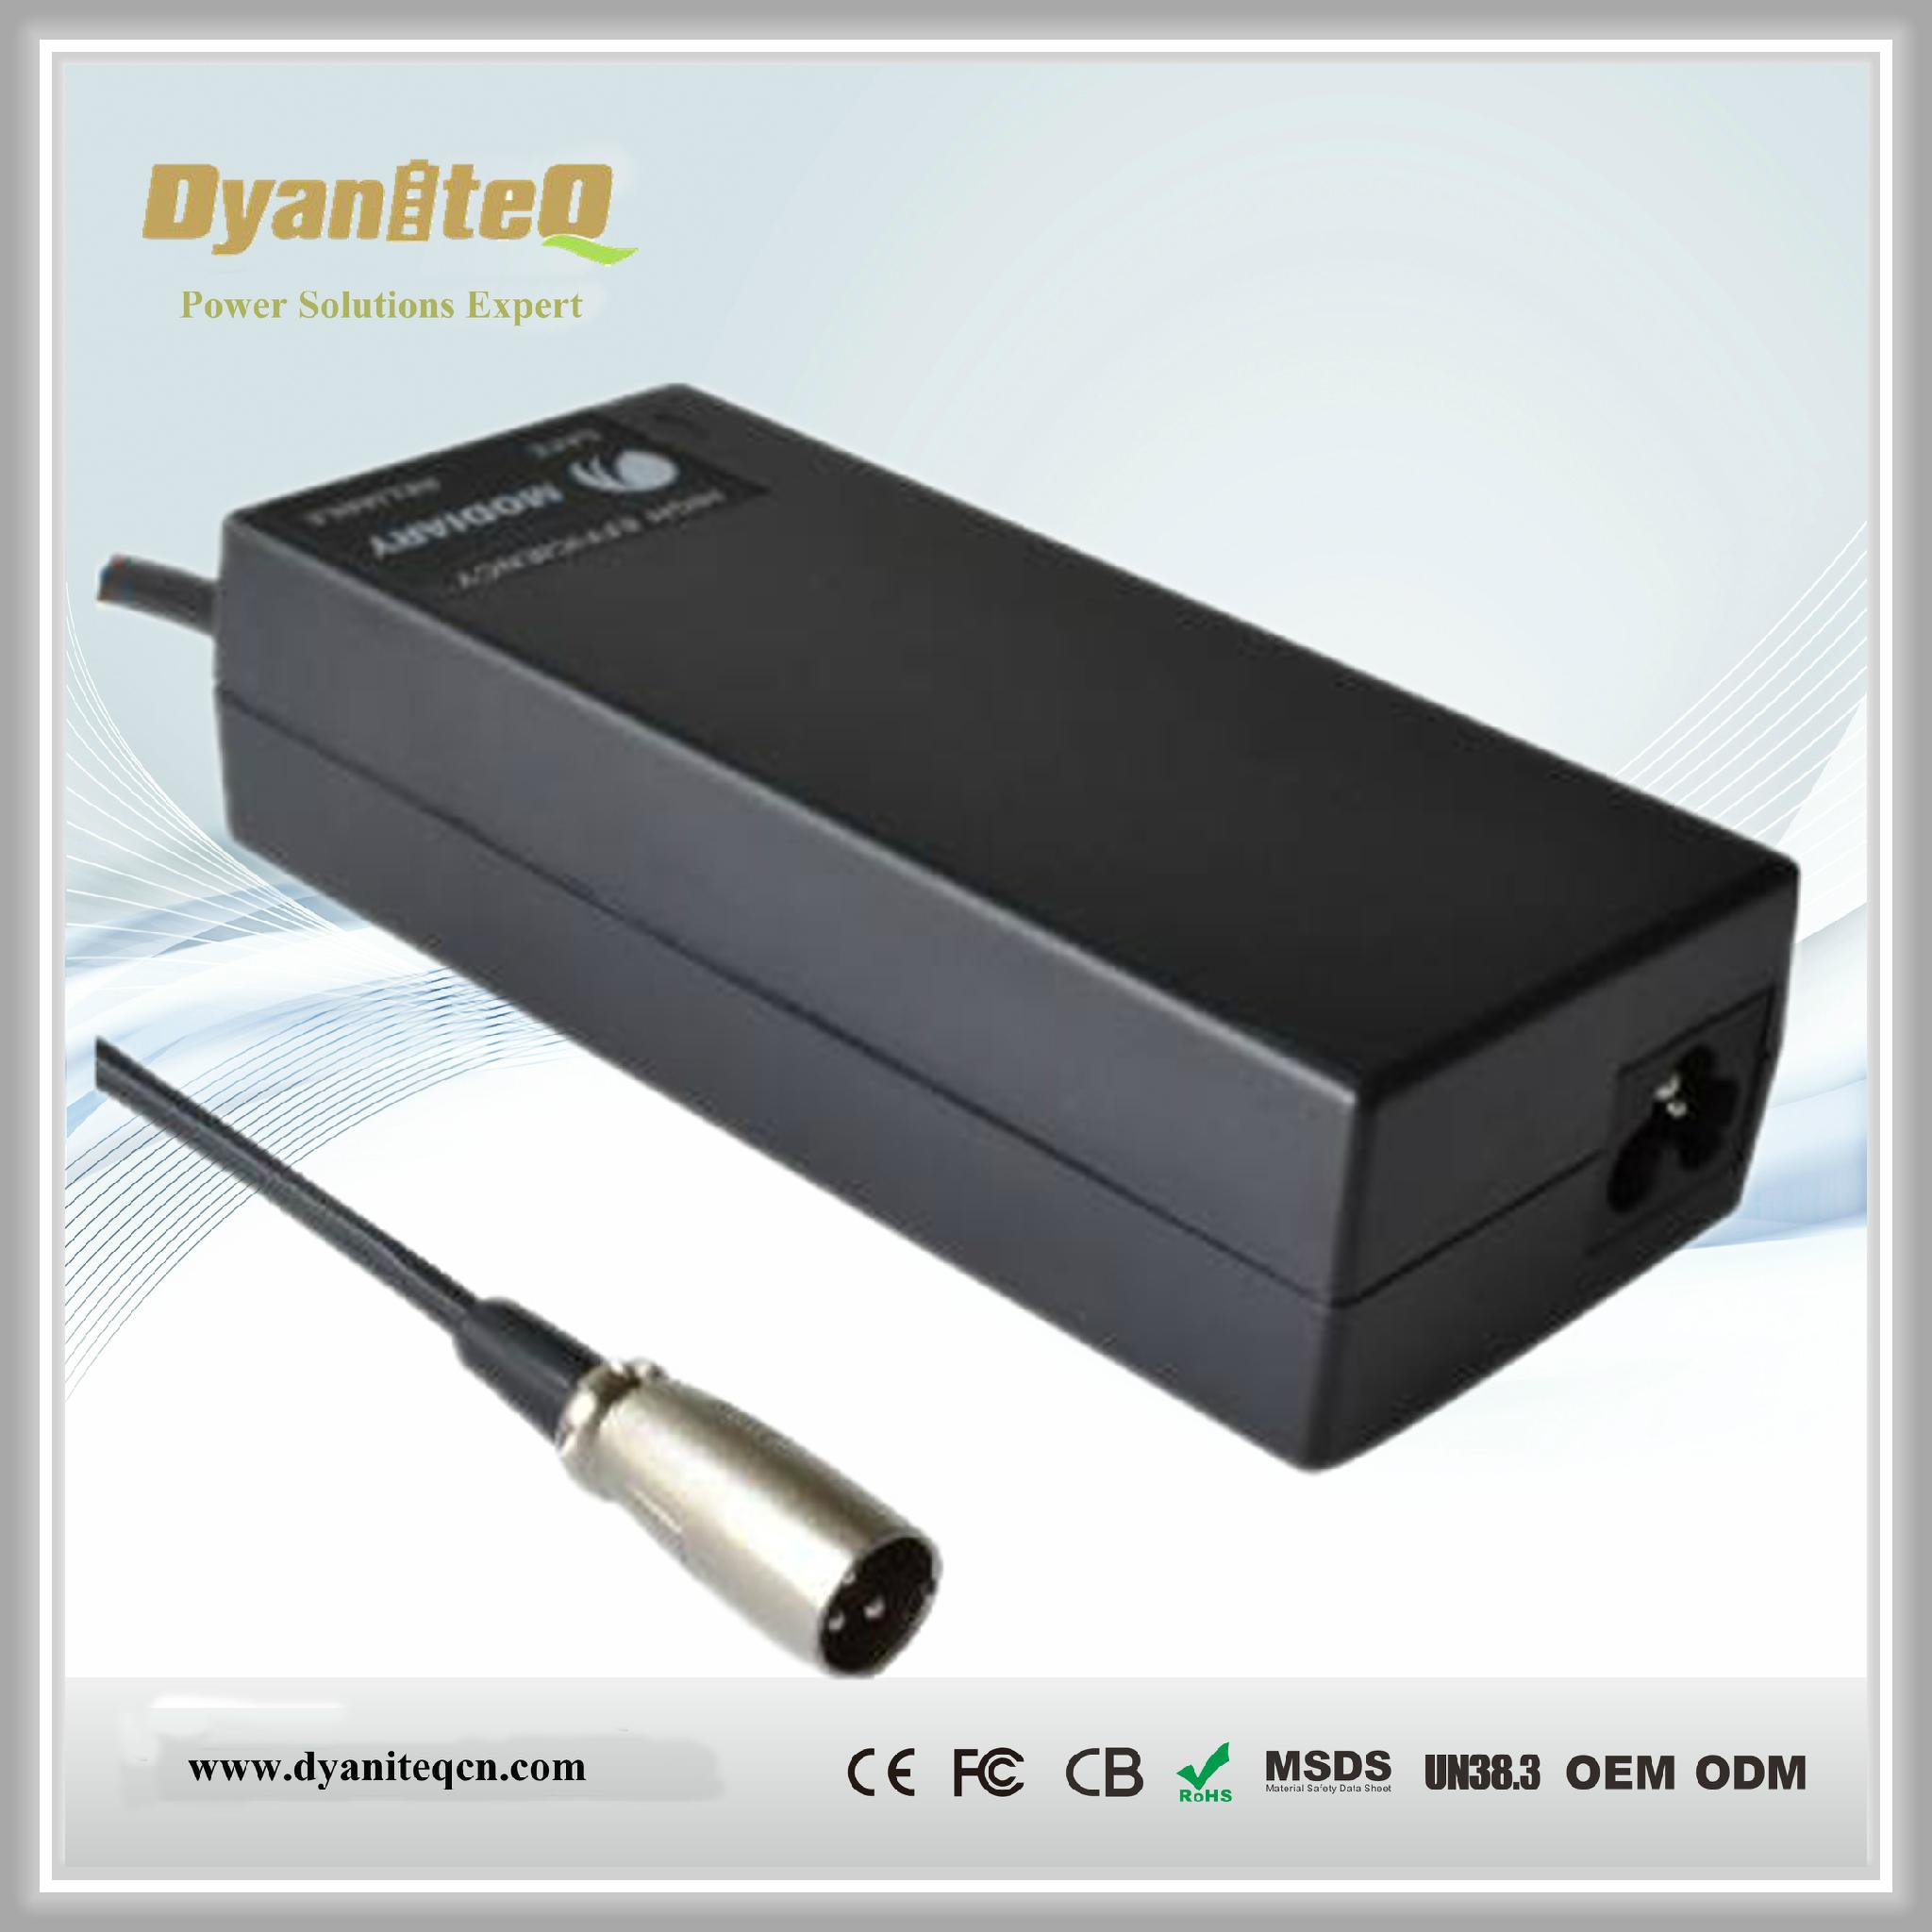 Vacuum Cleaner Charger 29.4V 2A with UL GS PSE CE approval 1